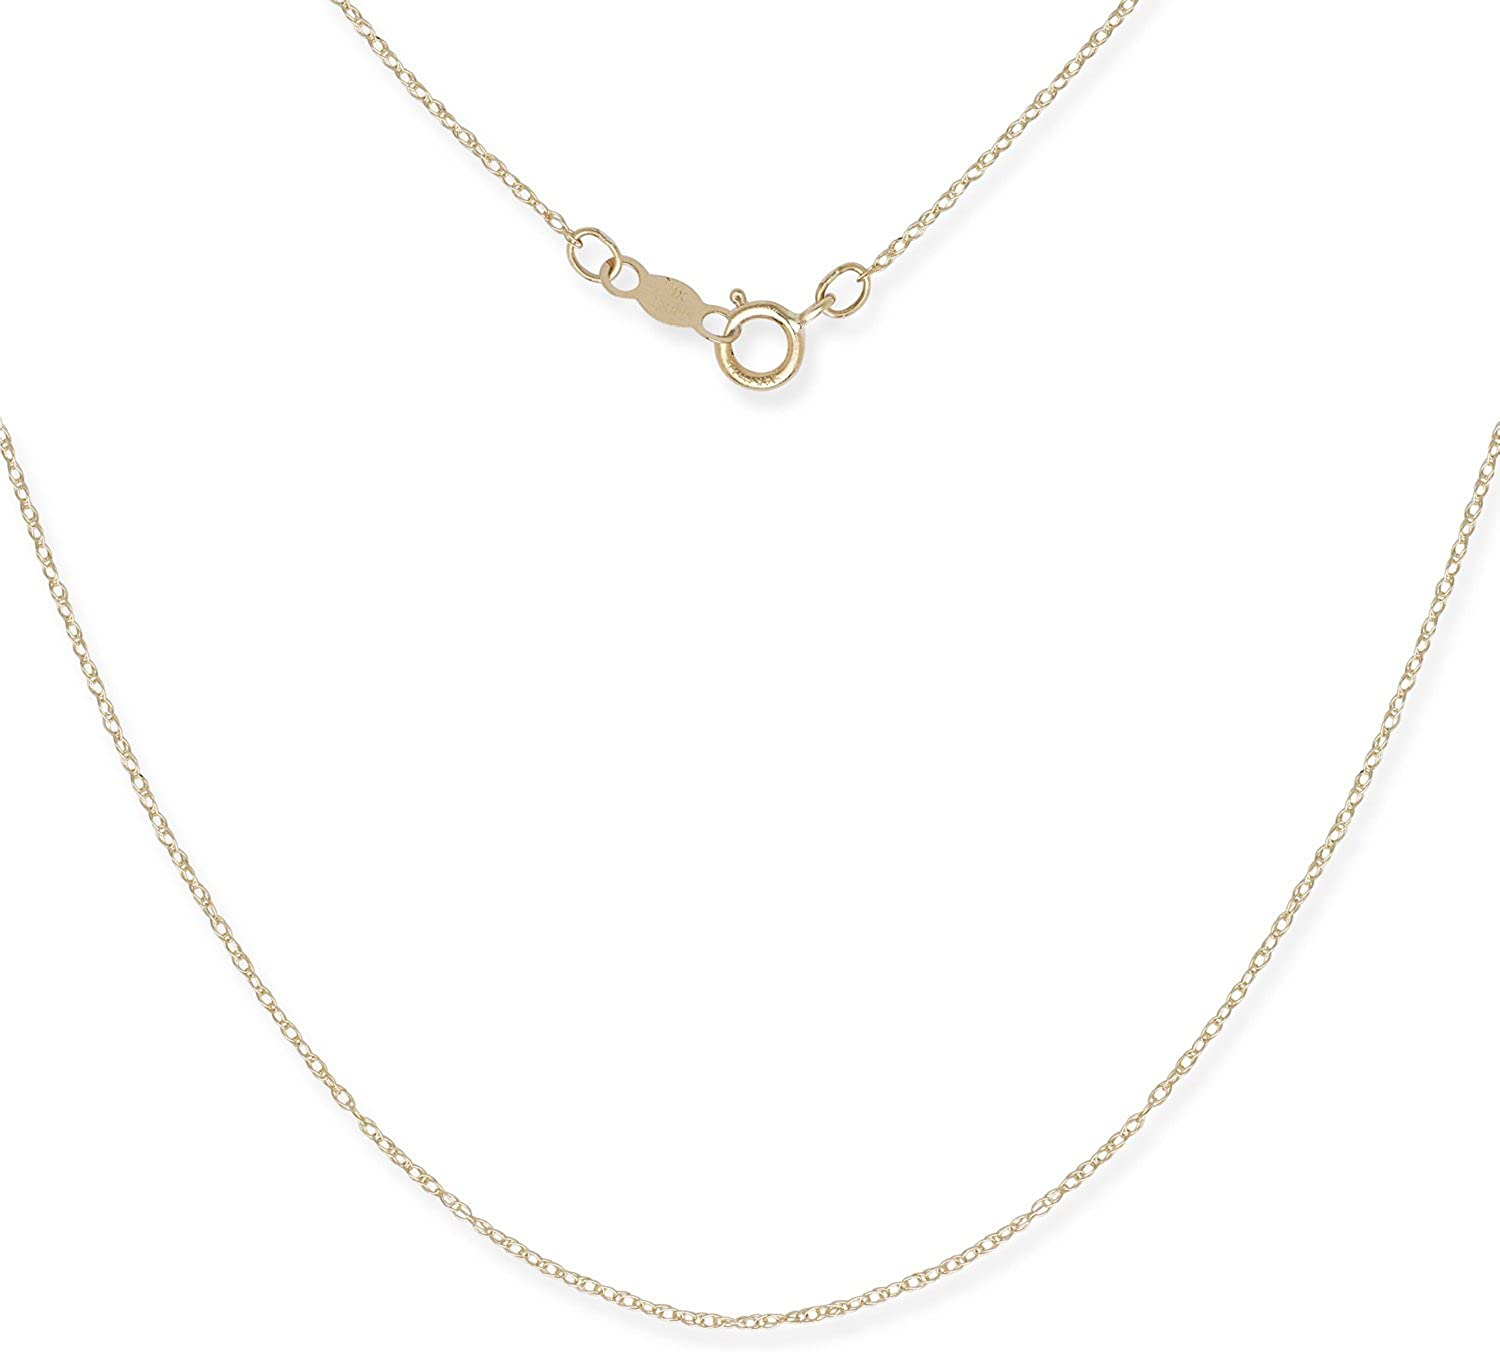 Amazon Com Jewelryweb 14k Gold Women S 16 22 Inch Carded Rope Chain Necklace Yellow Or White 16 White Gold Jewelry